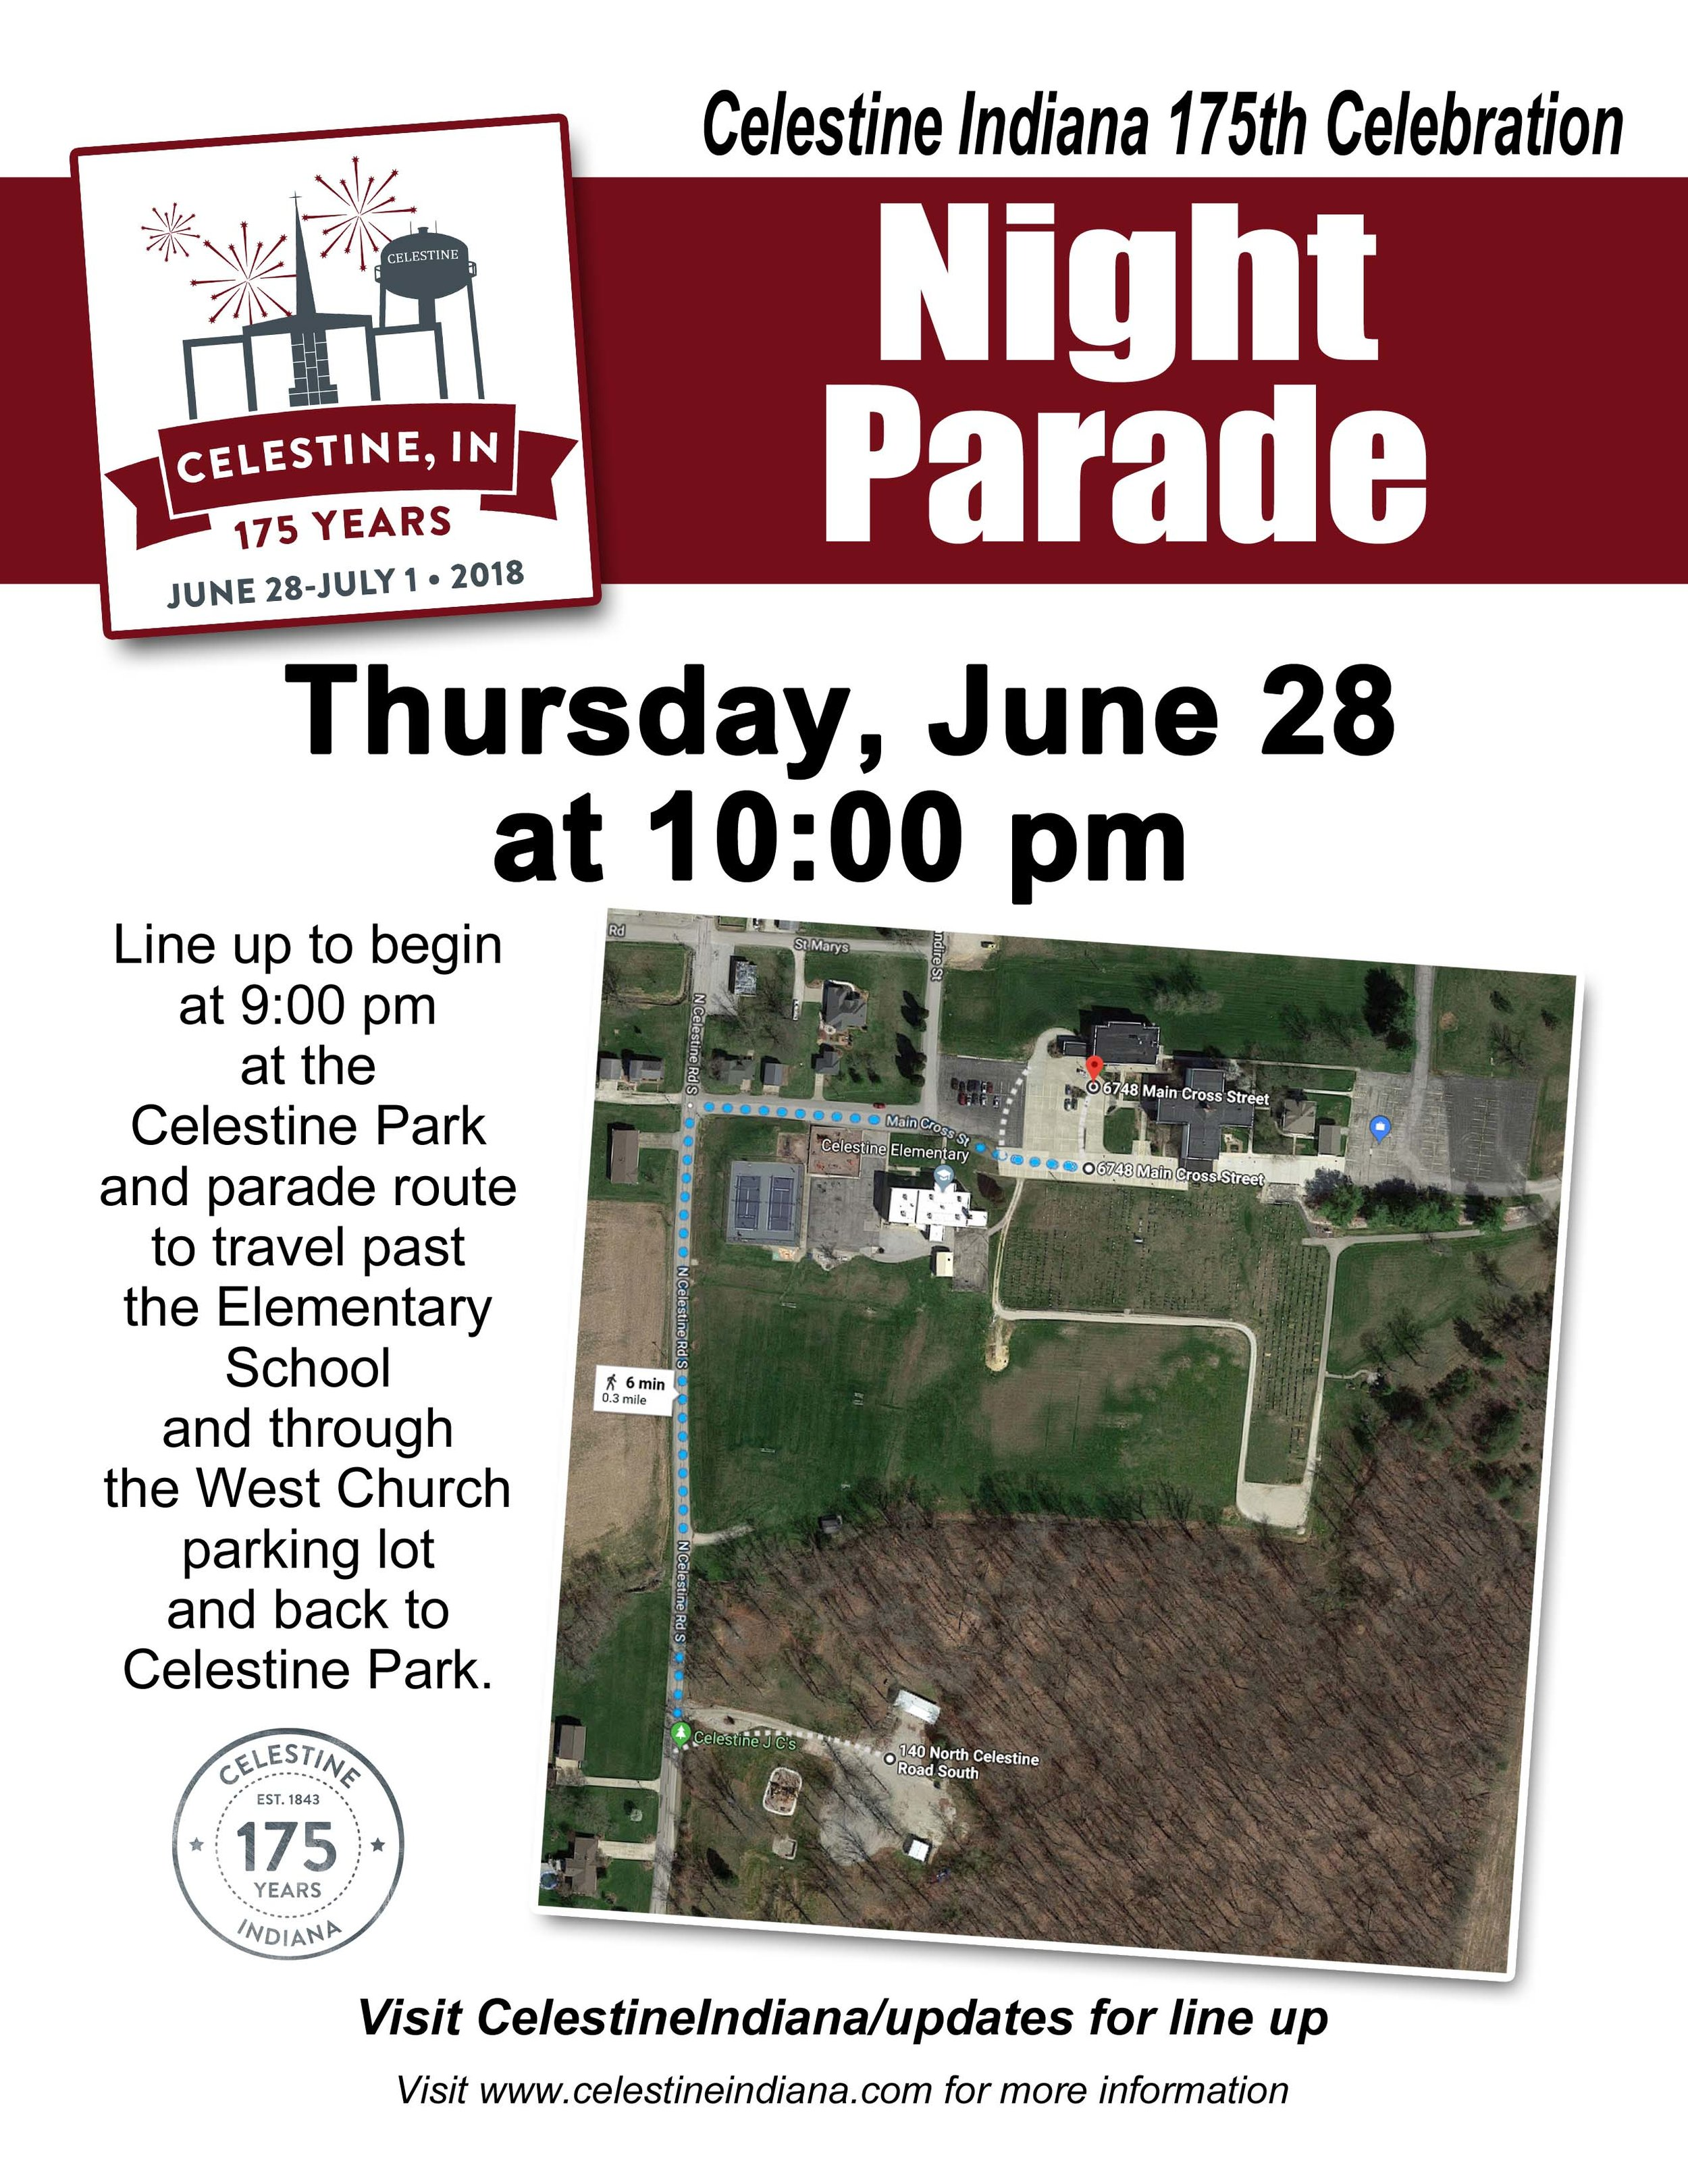 Night Parade Flyer_edited-1.jpg